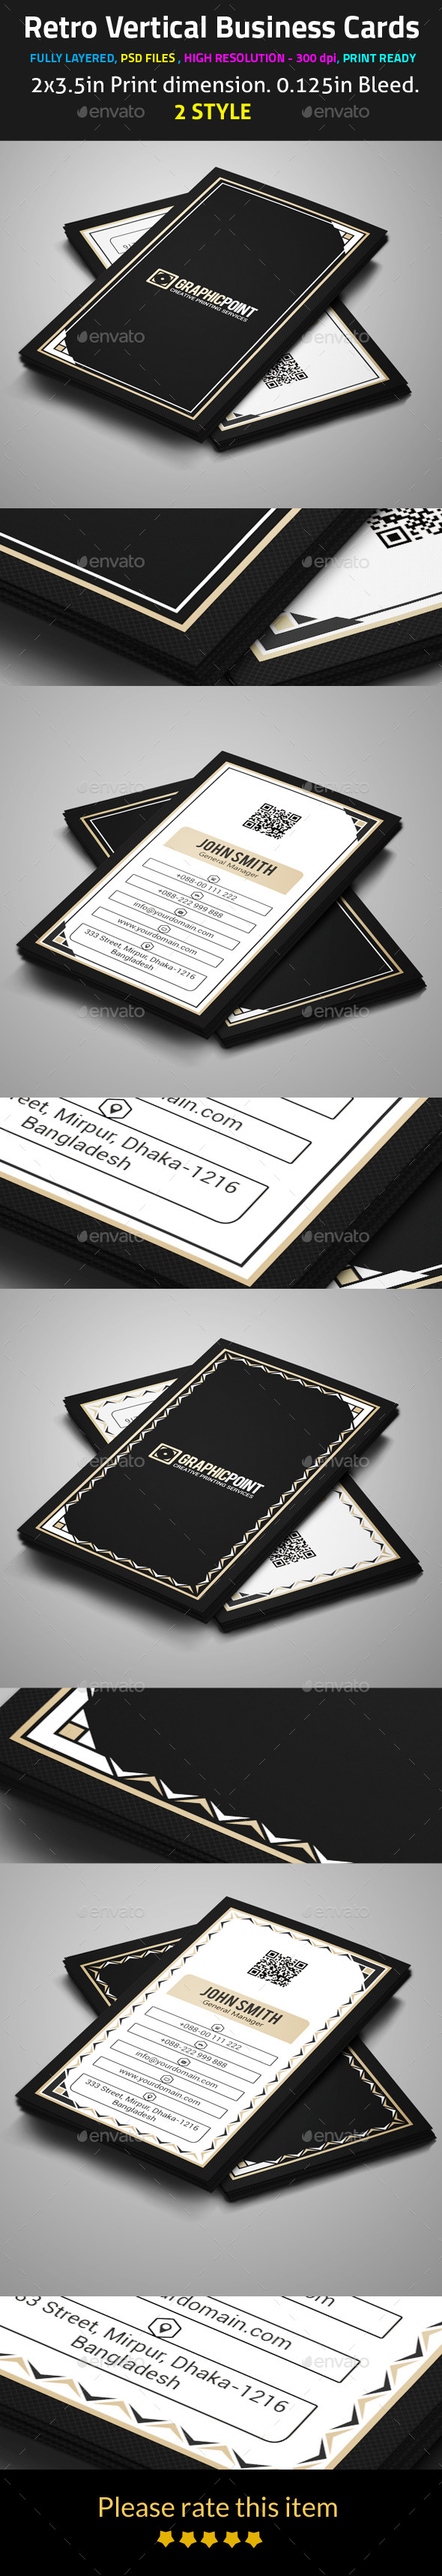 GraphicRiver Retro Vertical Business Cards 9517879